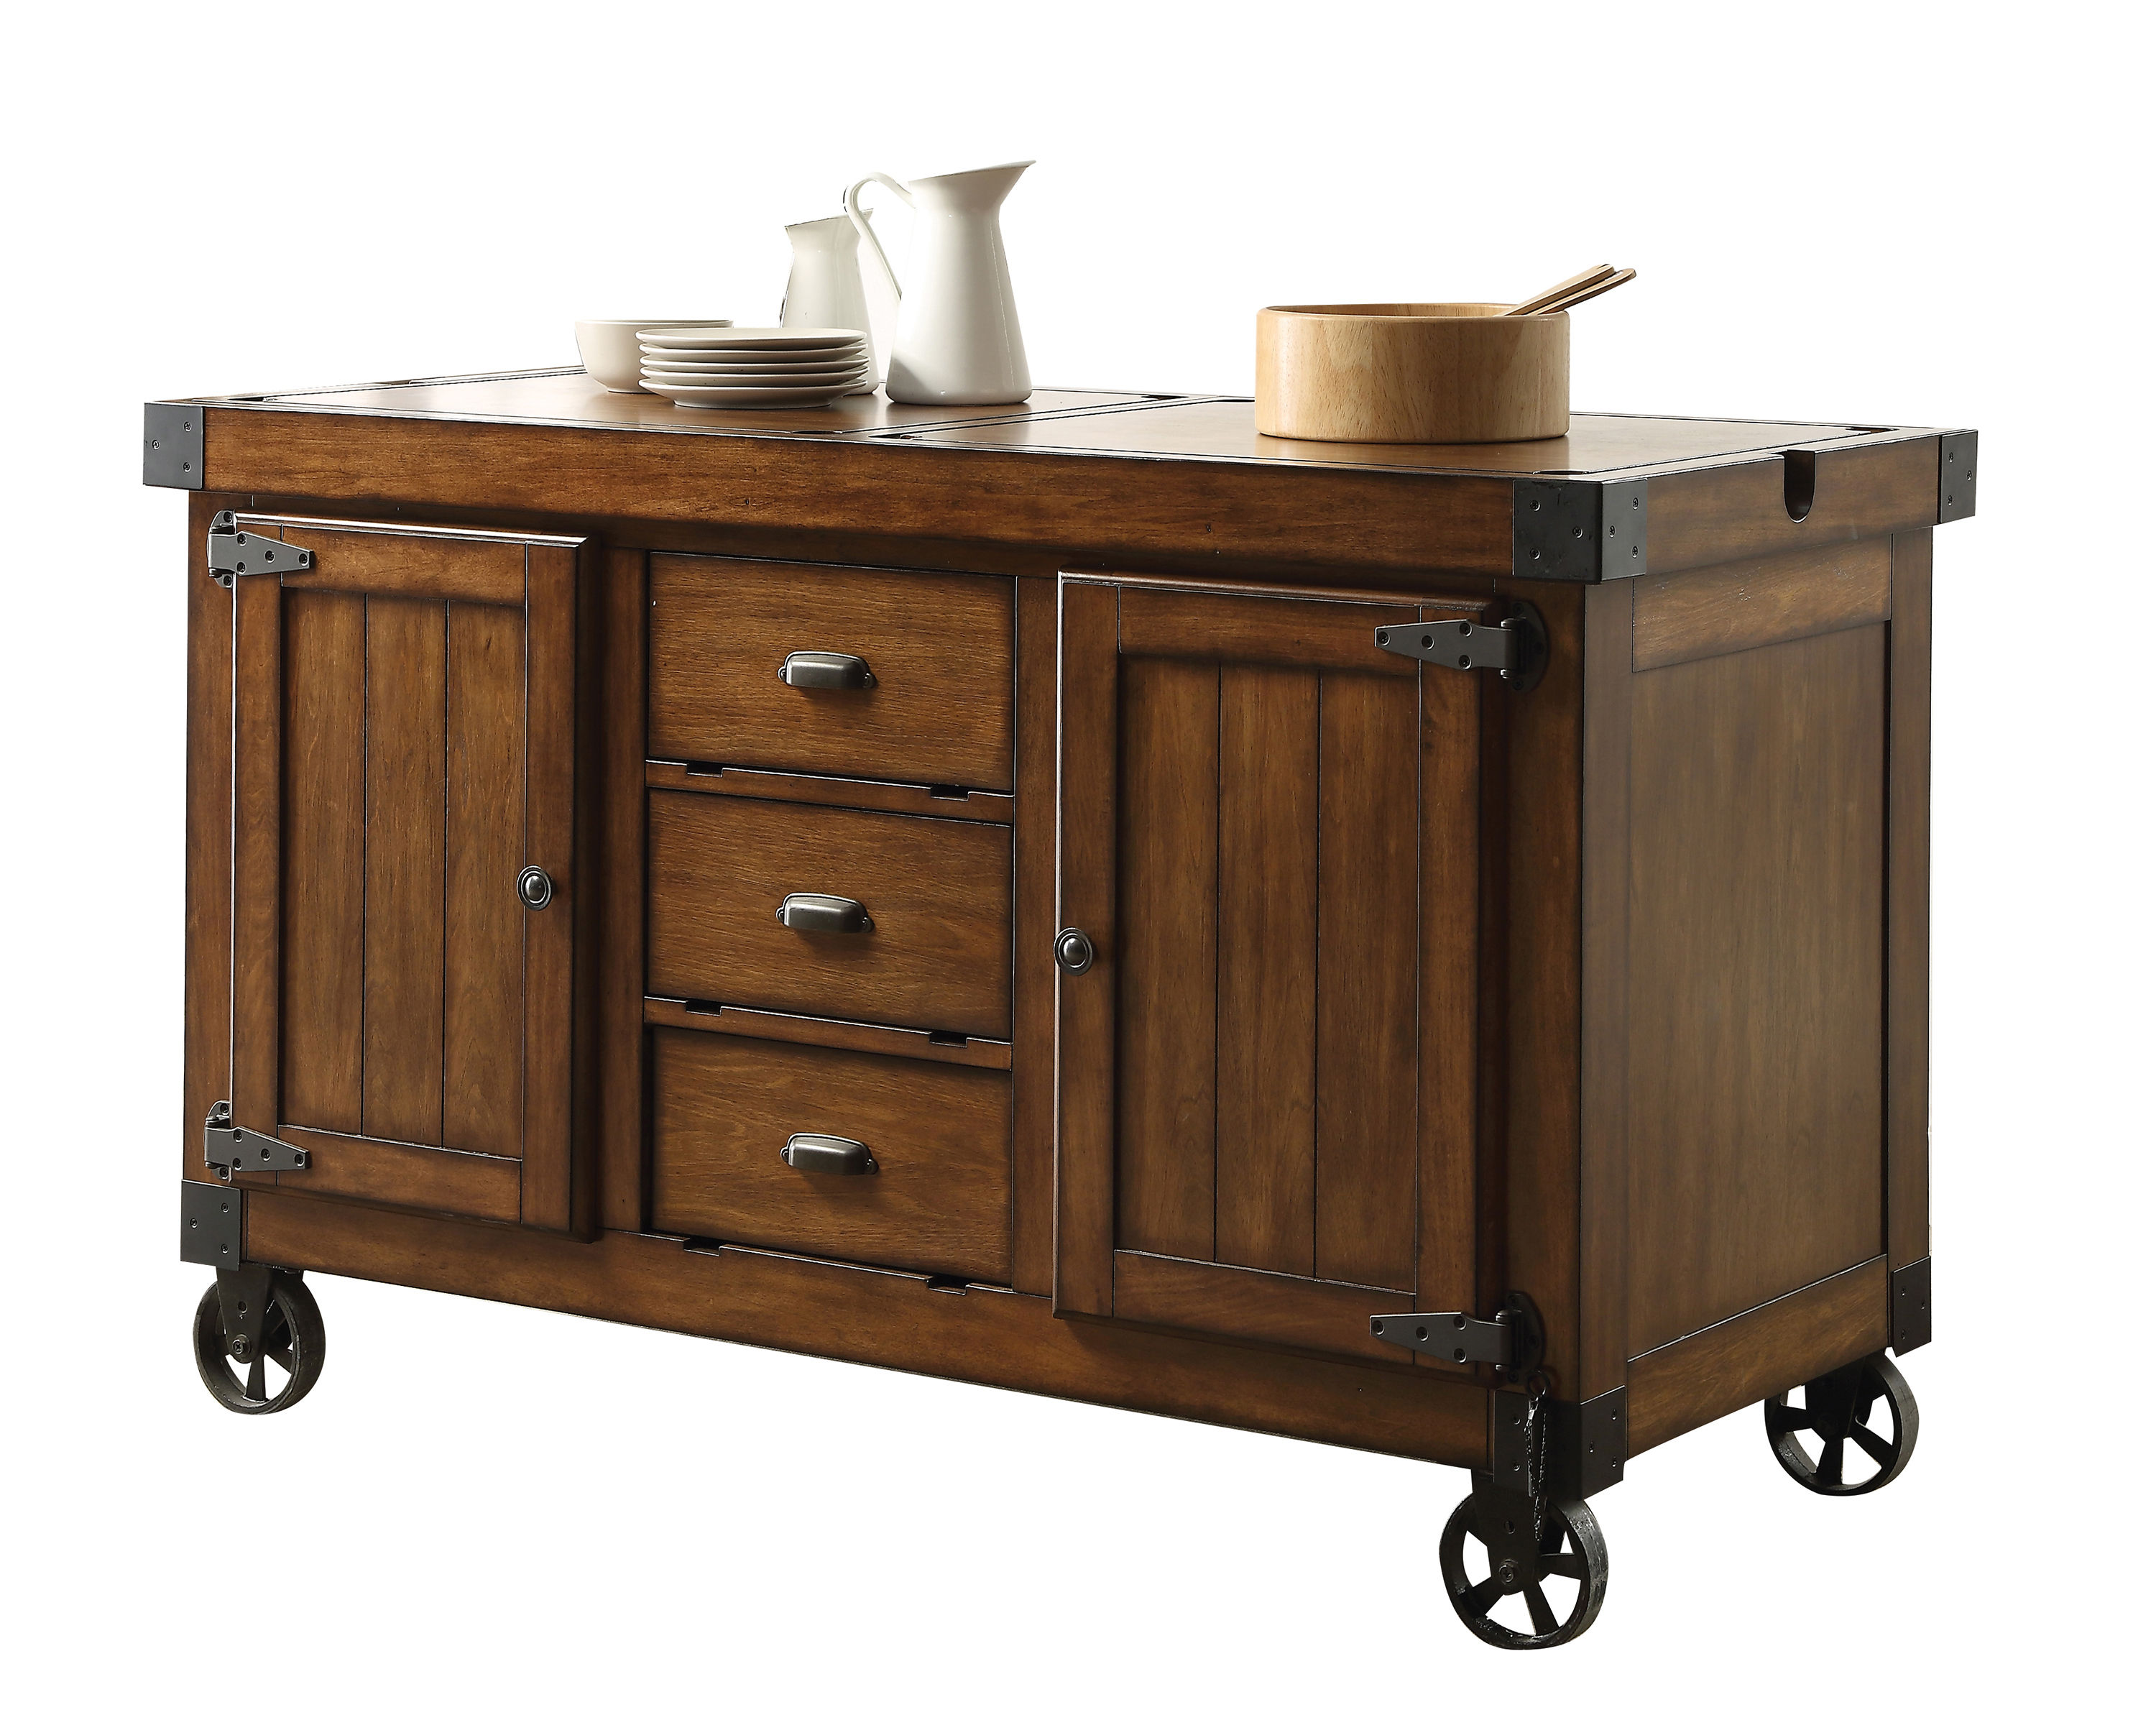 Acme Furniture Kabili Antique Tobacco Kitchen Cart